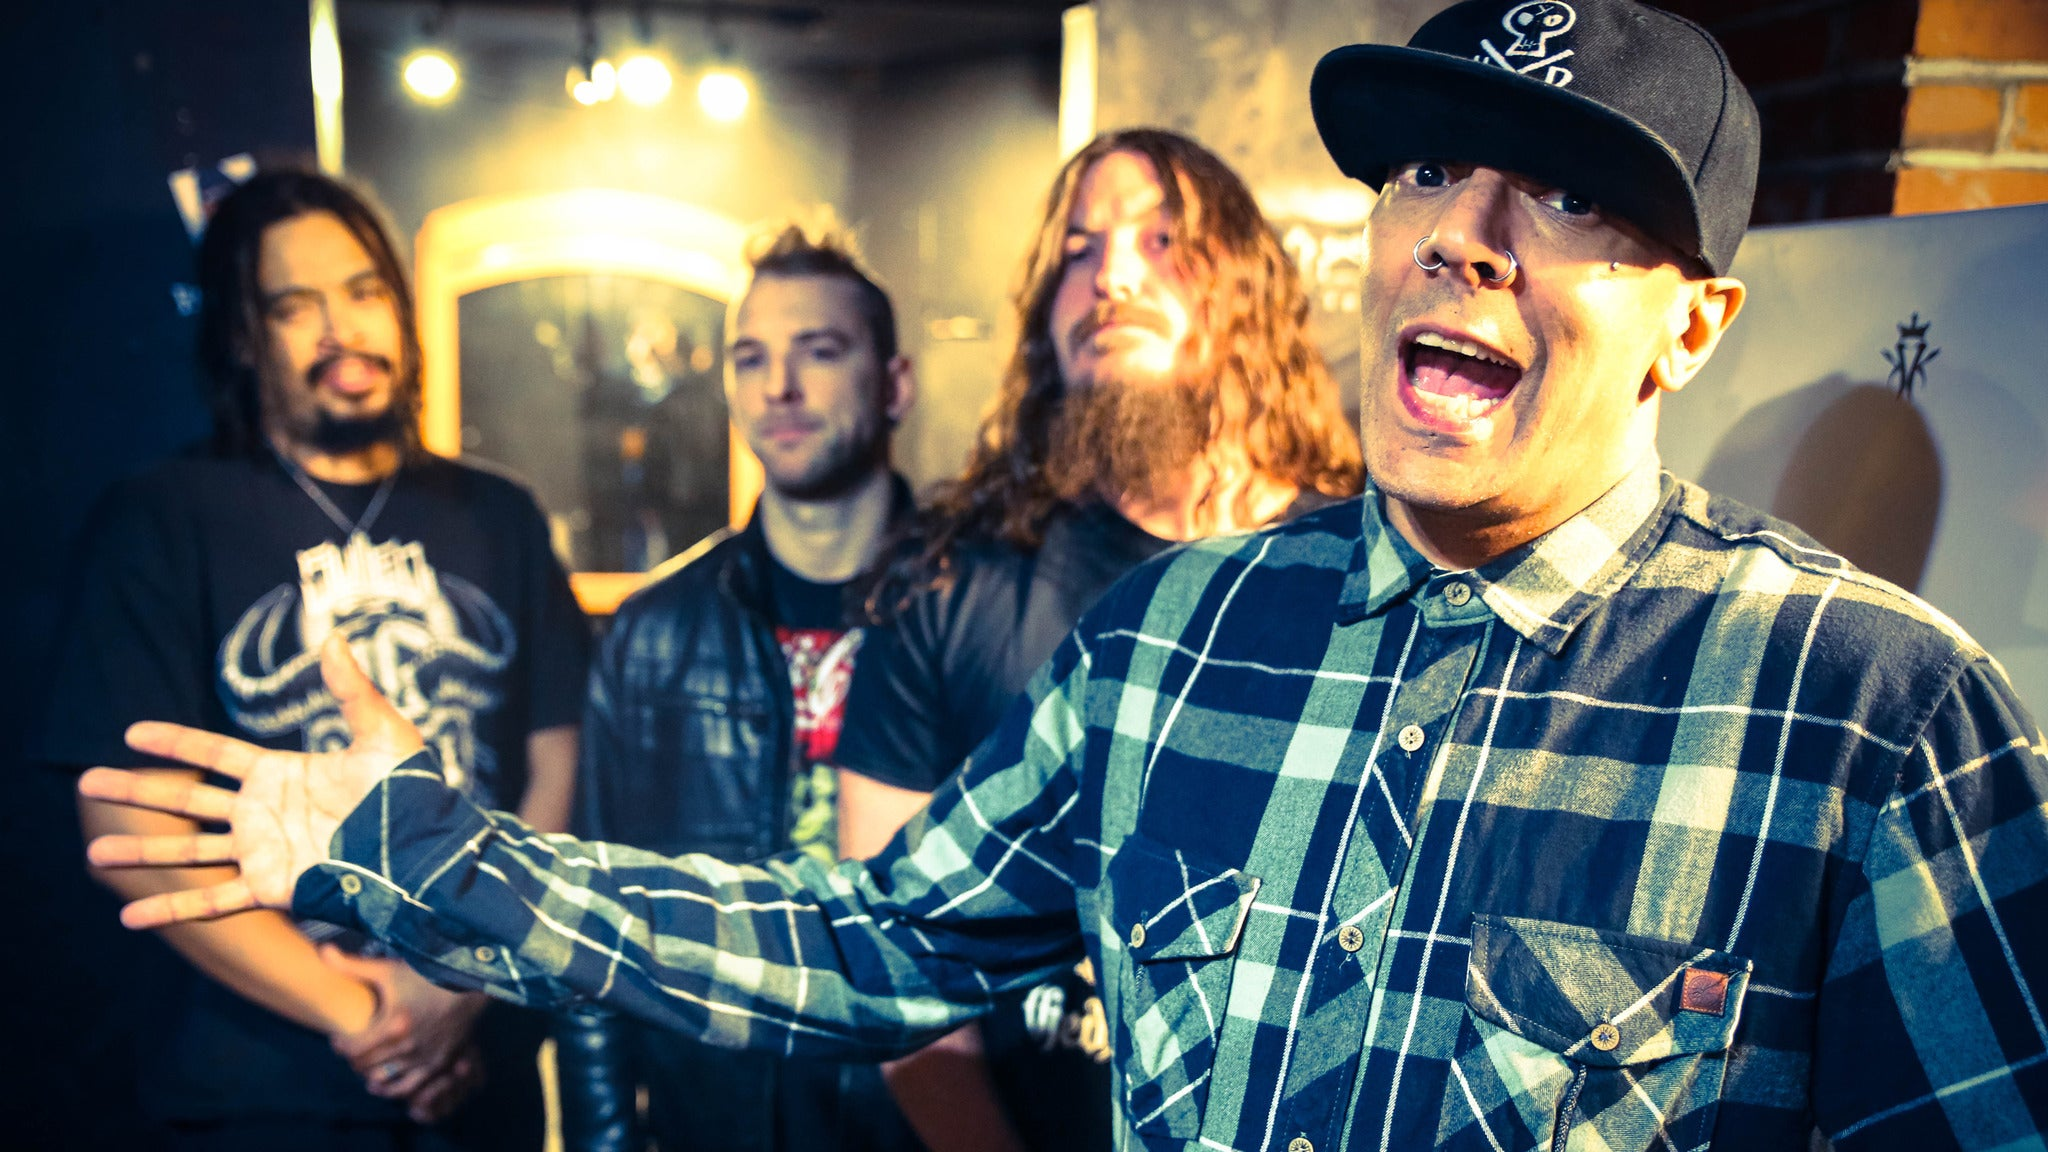 Broken Hearts Bash with (Hed) P.e & Flaw at Top Fuel Saloon